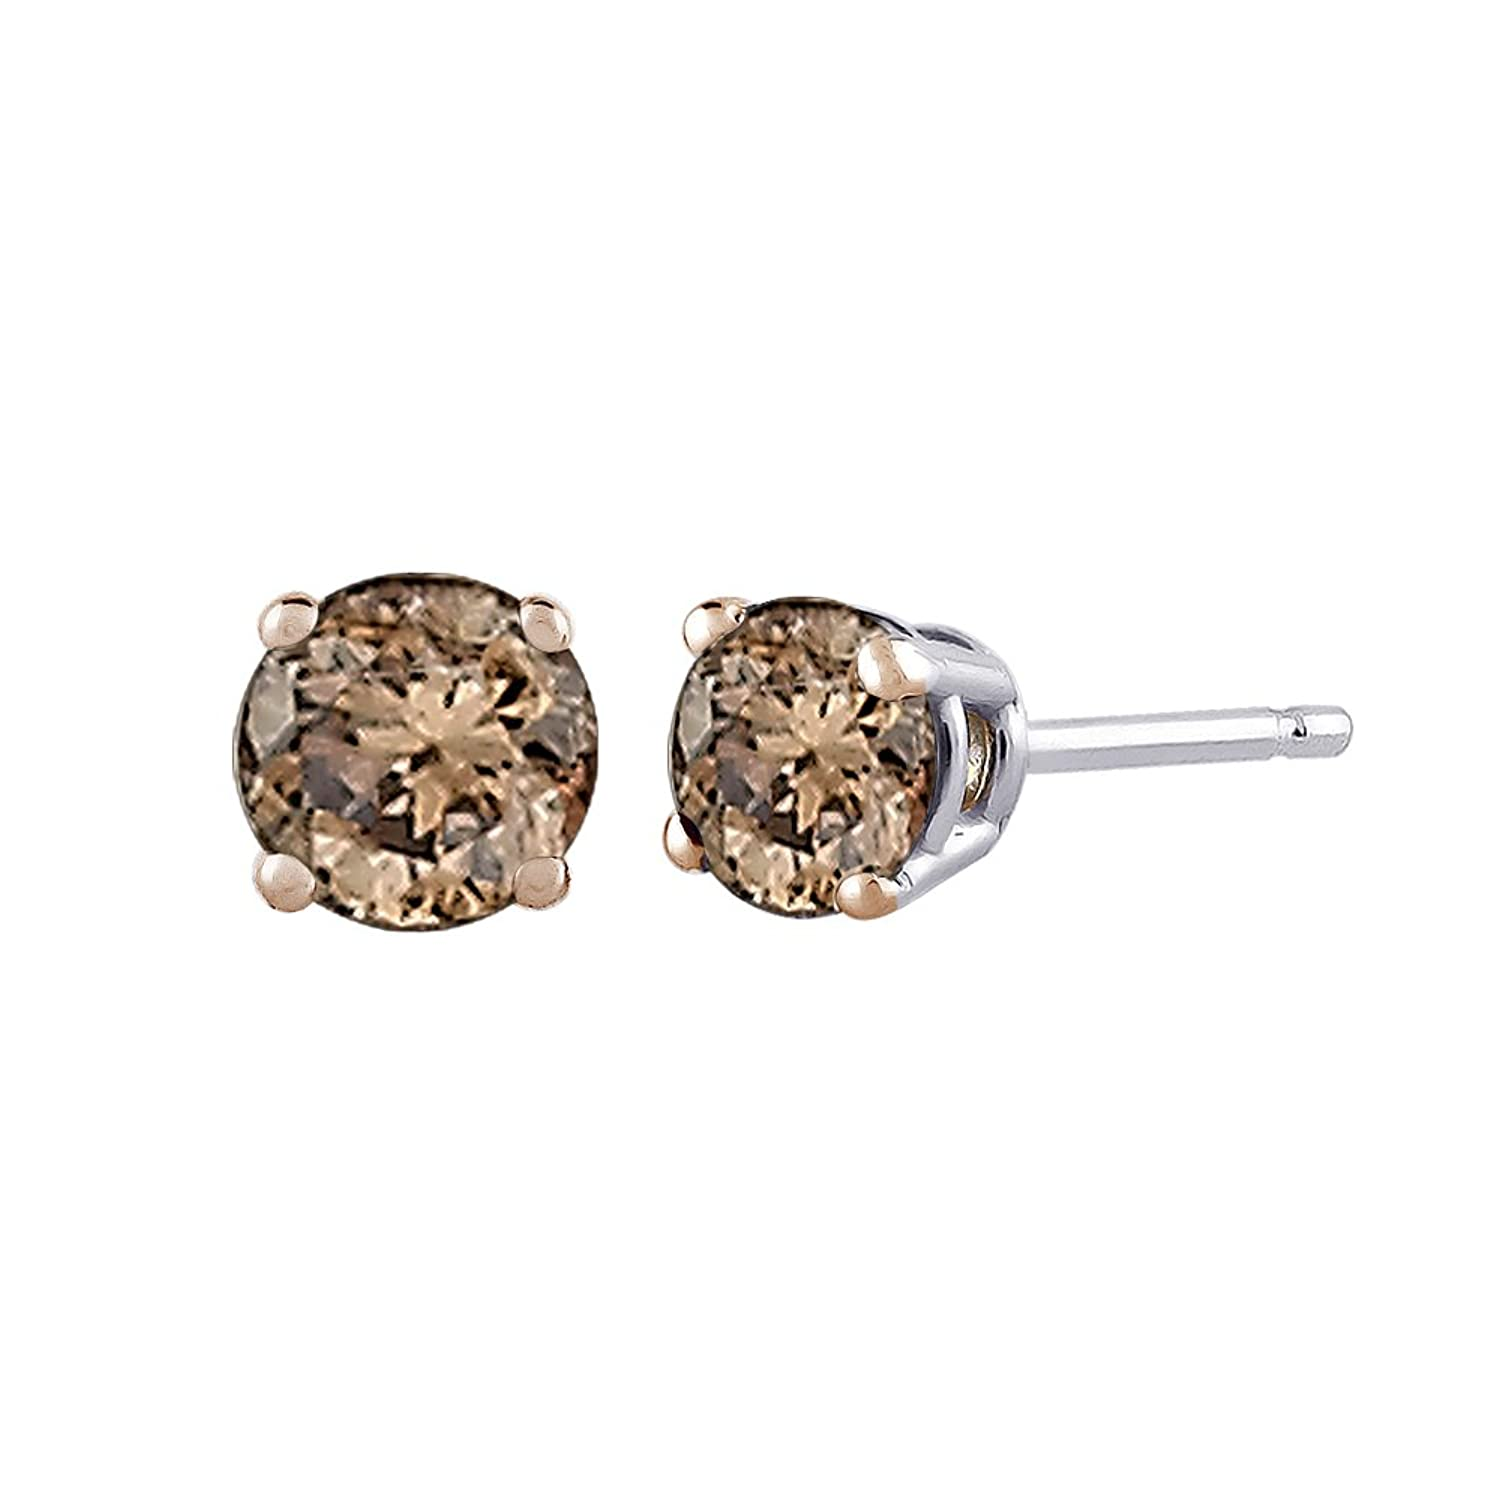 products diamond anvil jewelry champagne aura stud diam champ spartan stone studs shop aa